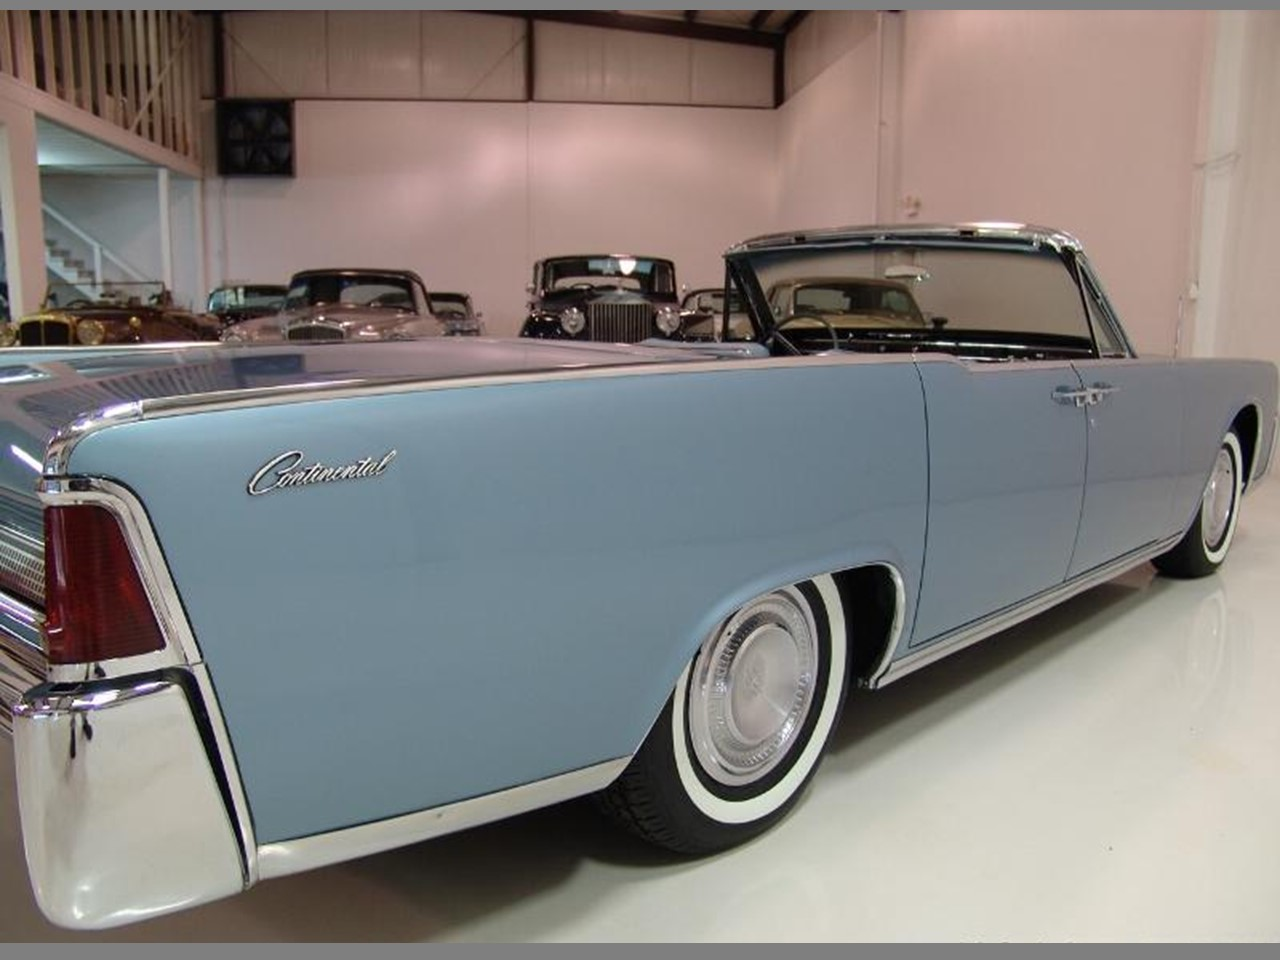 flashback 1964 continental convertible notoriousluxury. Black Bedroom Furniture Sets. Home Design Ideas